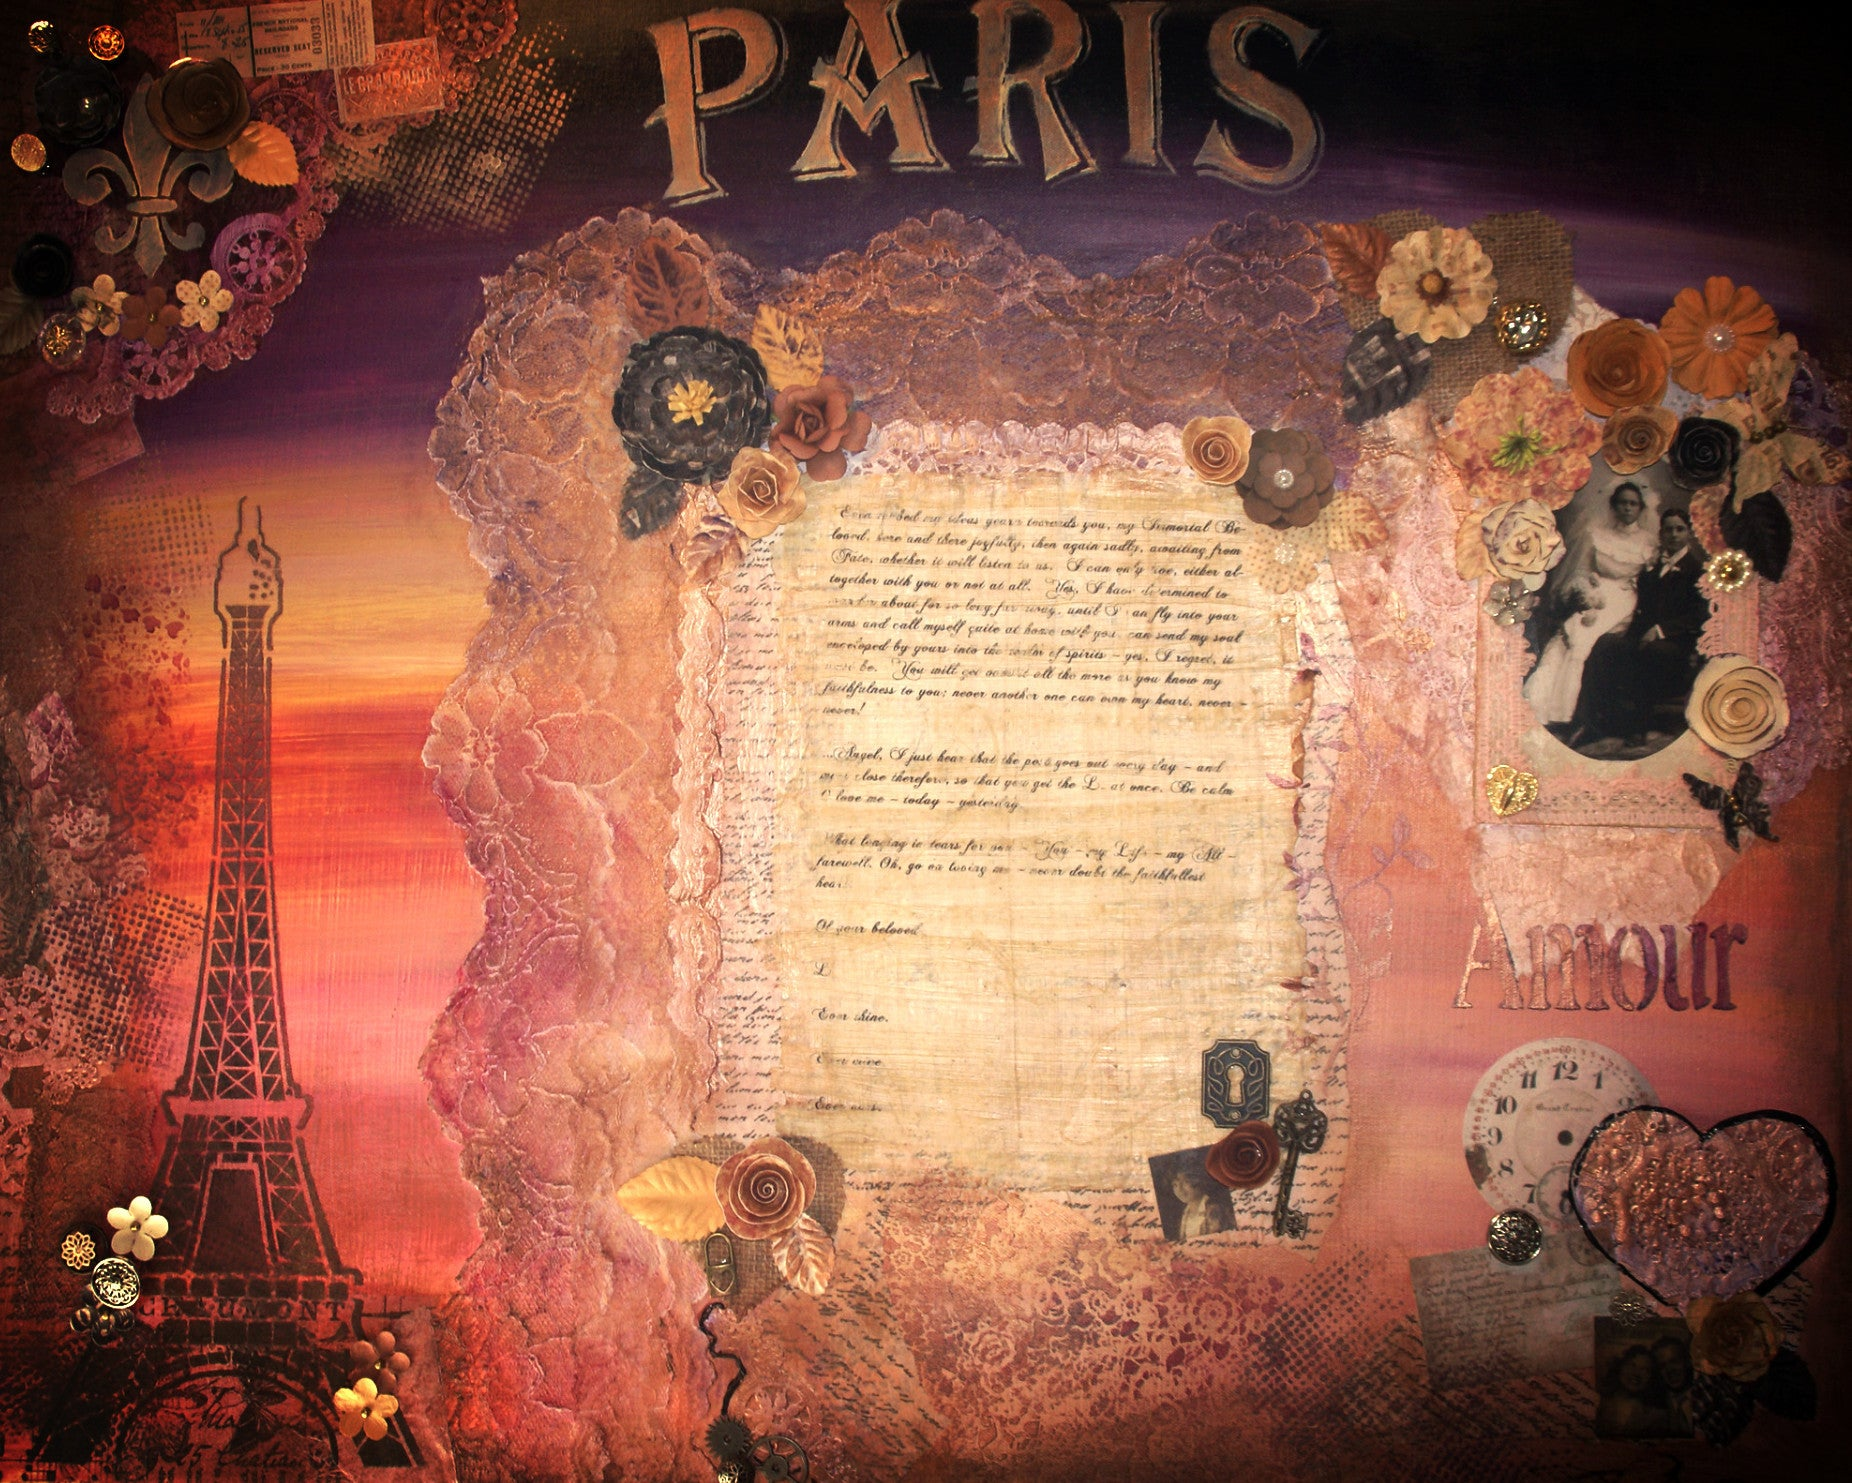 Love, Paris. Mixed Media - Abstract Artwork by Nancy Chovancek Mixed Media - abstract artwork Mixed Media - zentangle artwork Abstract Artwork by Nancy Chovancek - 123rf.com